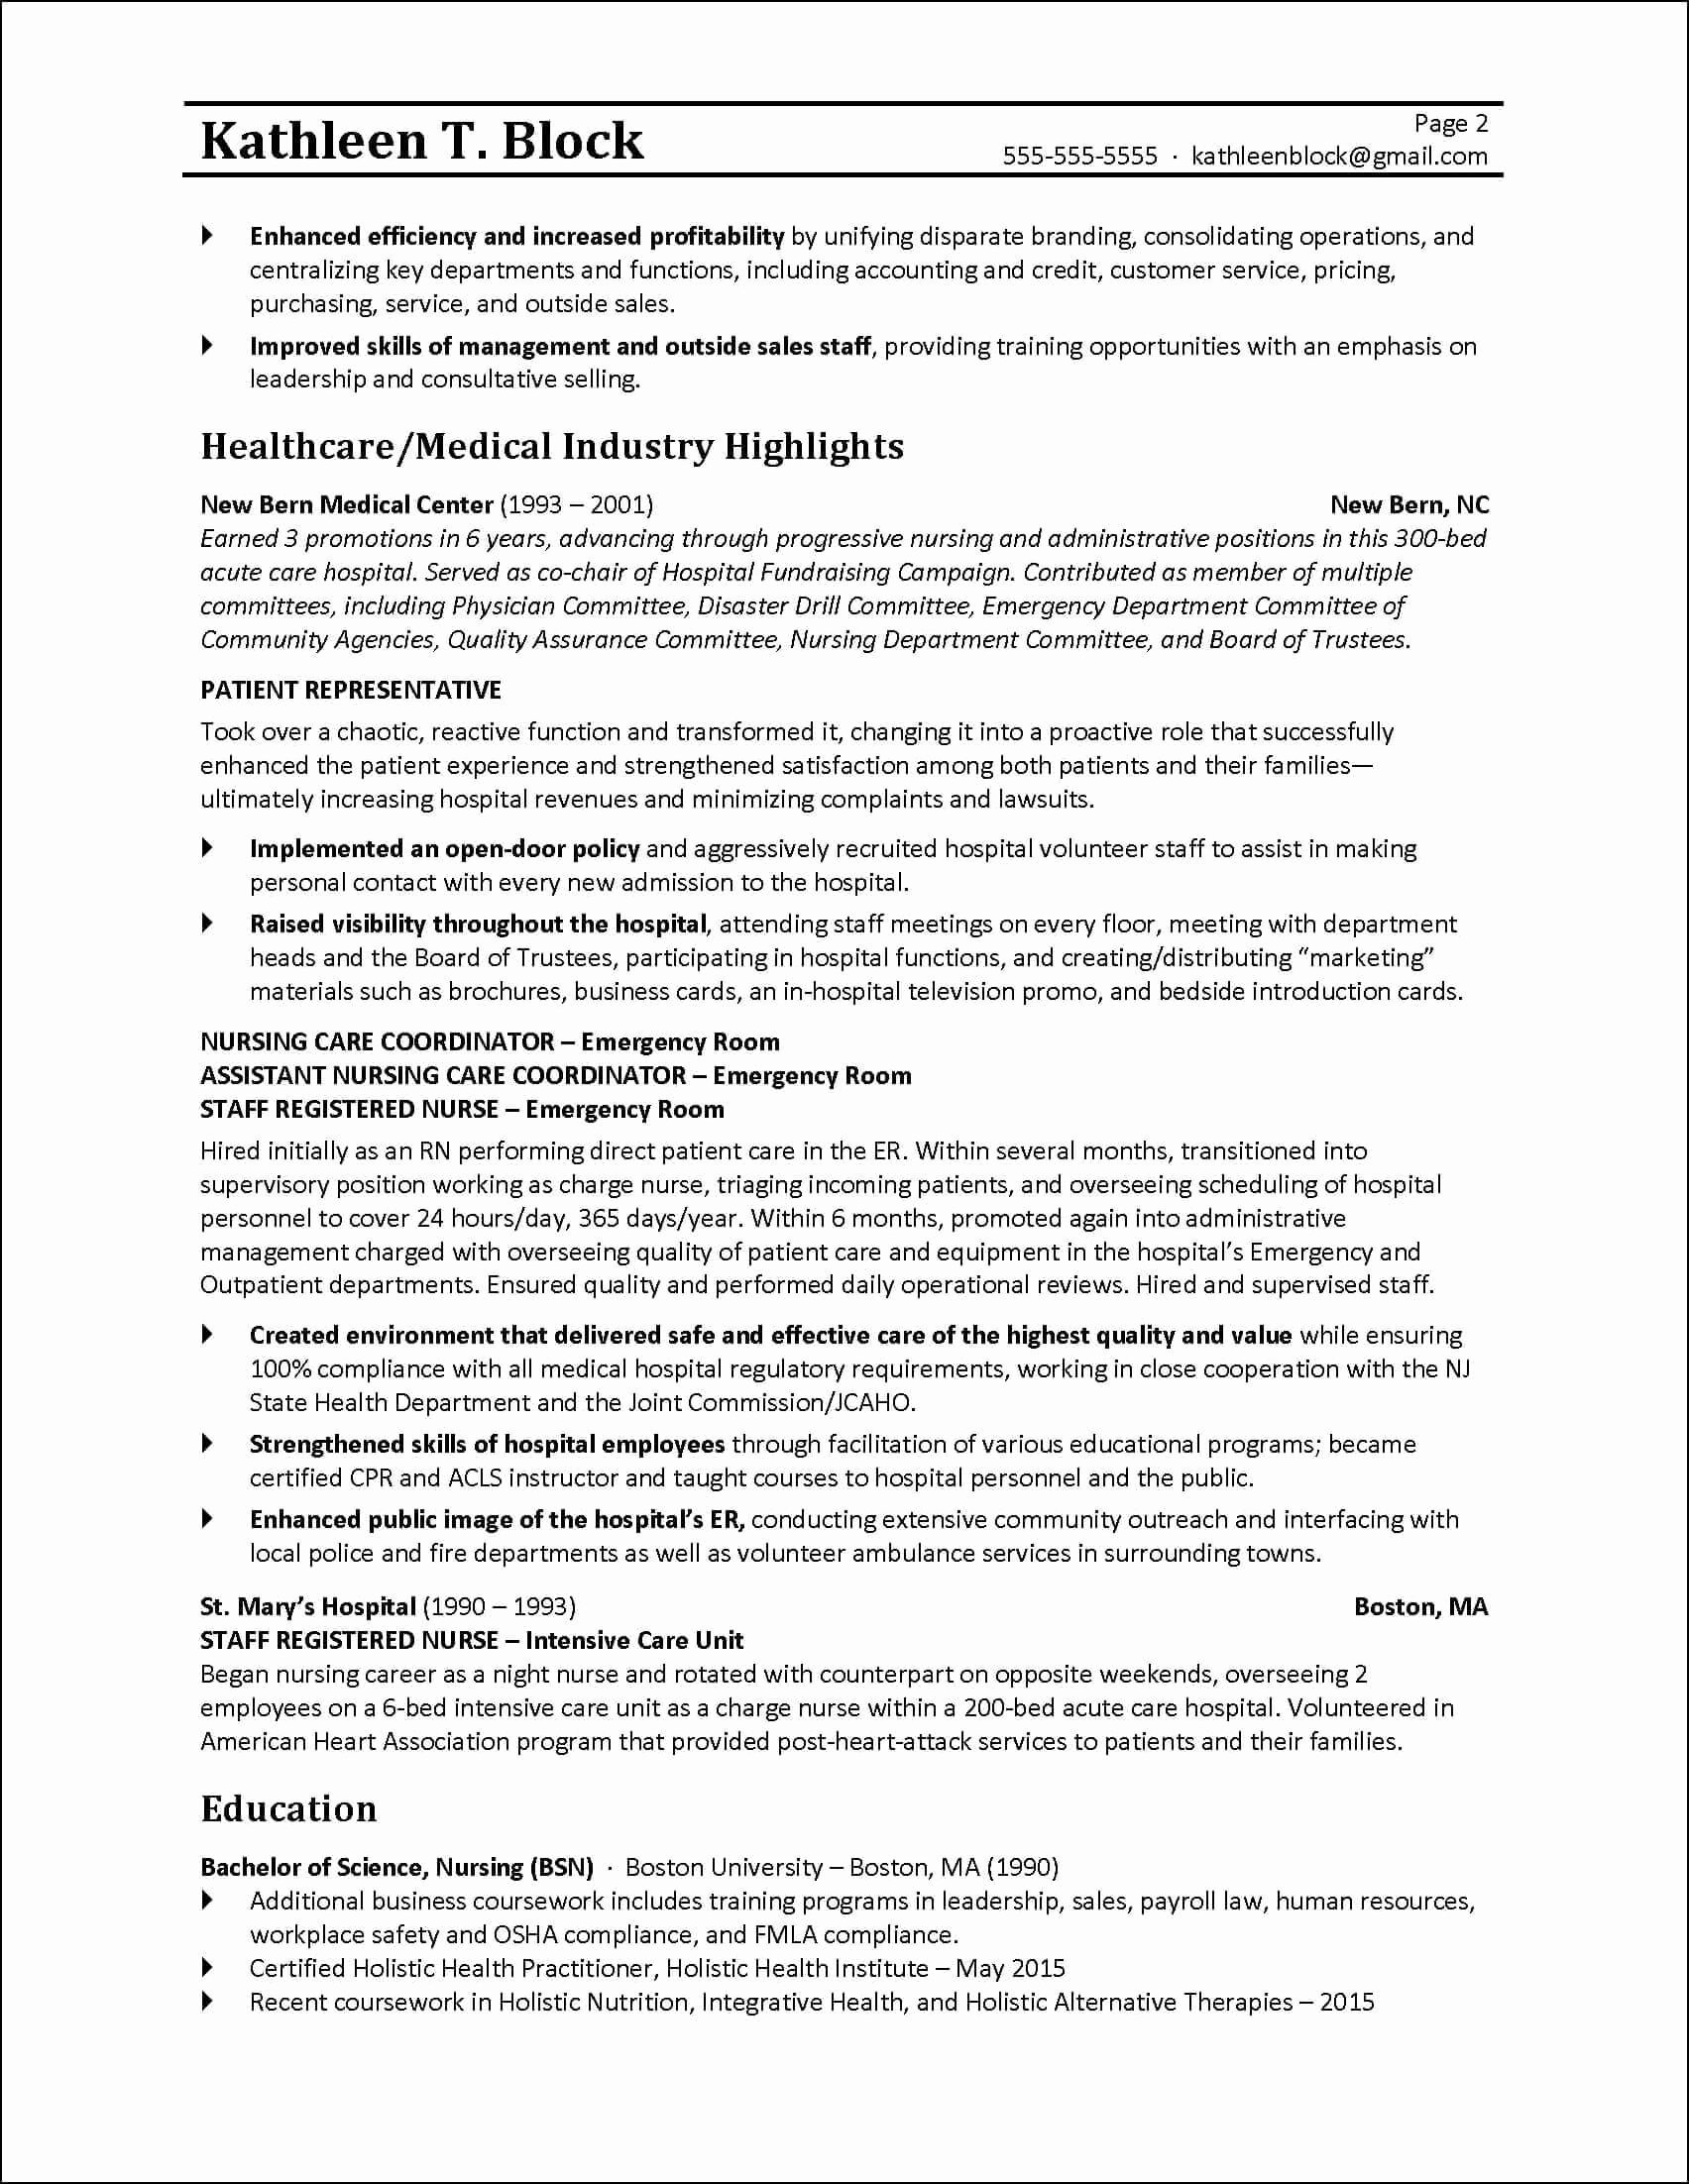 Small Business Owner Resume Awesome Resume Tips for former Business Owners to Land A Corporate Job